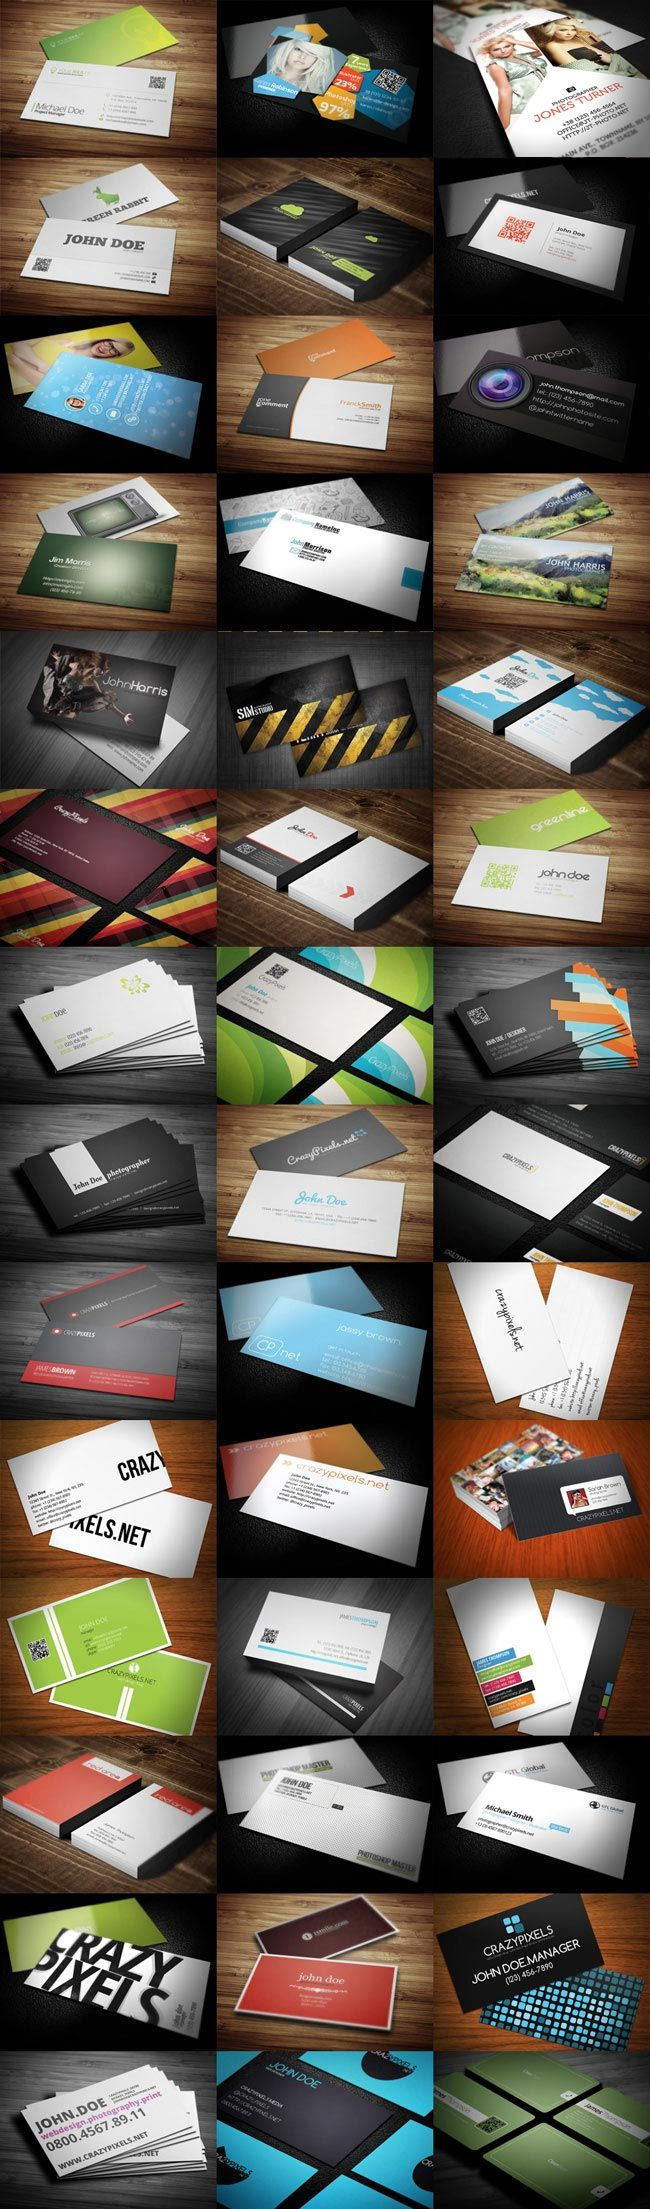 14 best business cards images on pinterest business card design today we have an amazing treat for you your design team here at designrfix deals has teamed up with the folks at crazyfuze to bring you this unbelievable reheart Image collections